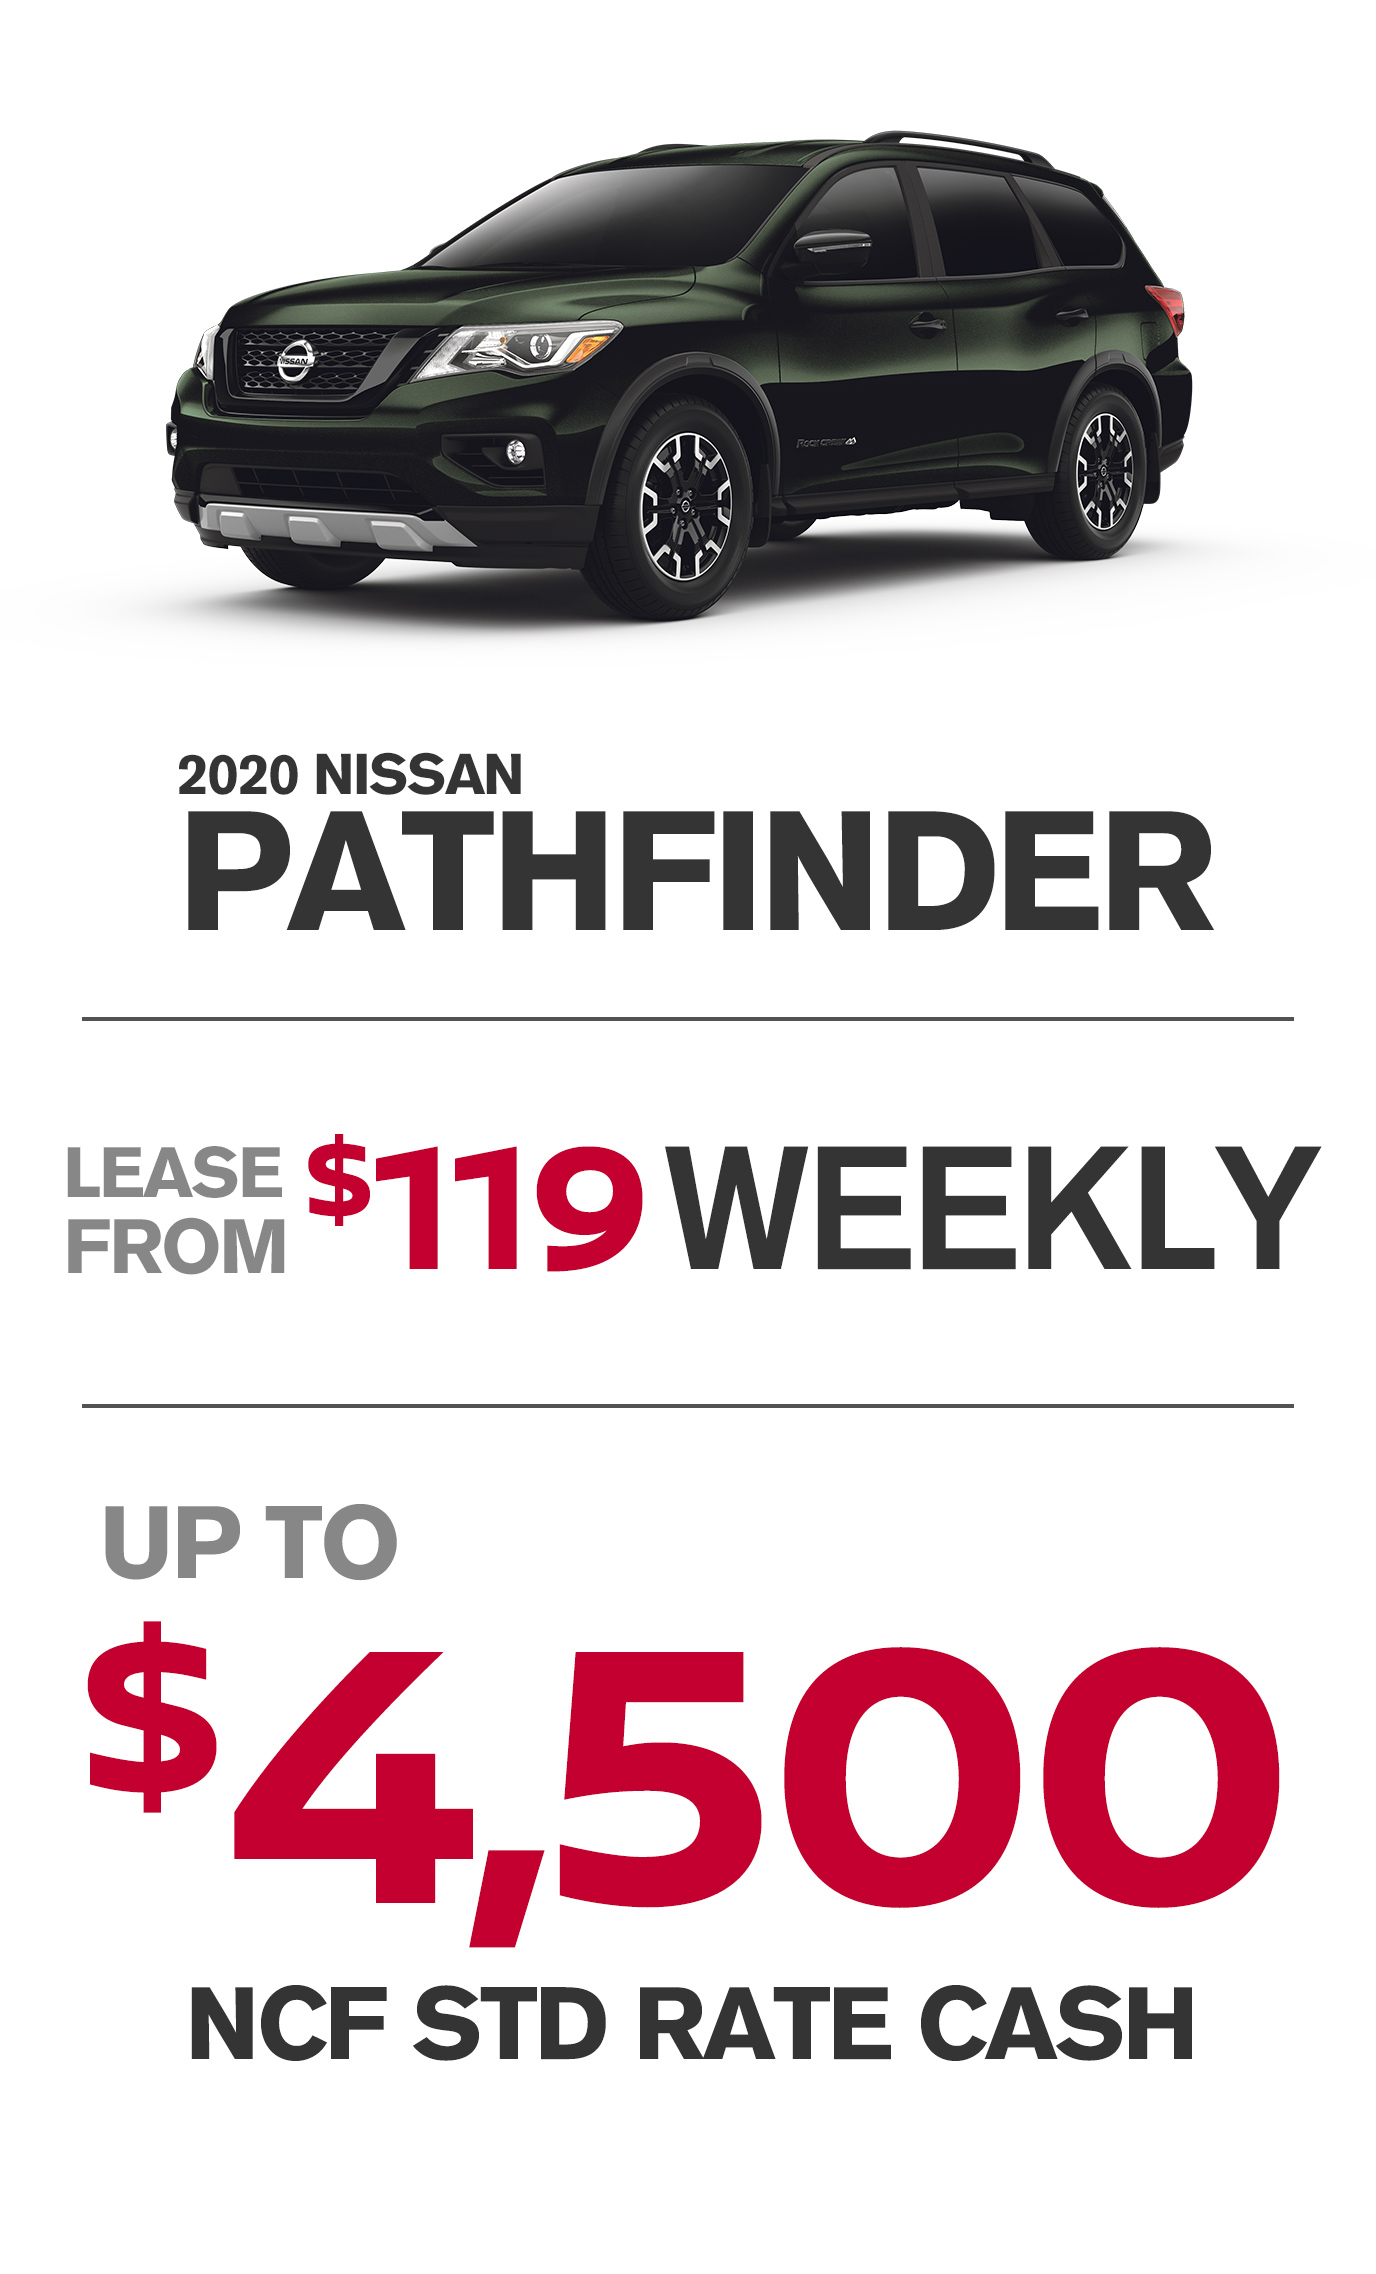 Pathfinder Offer